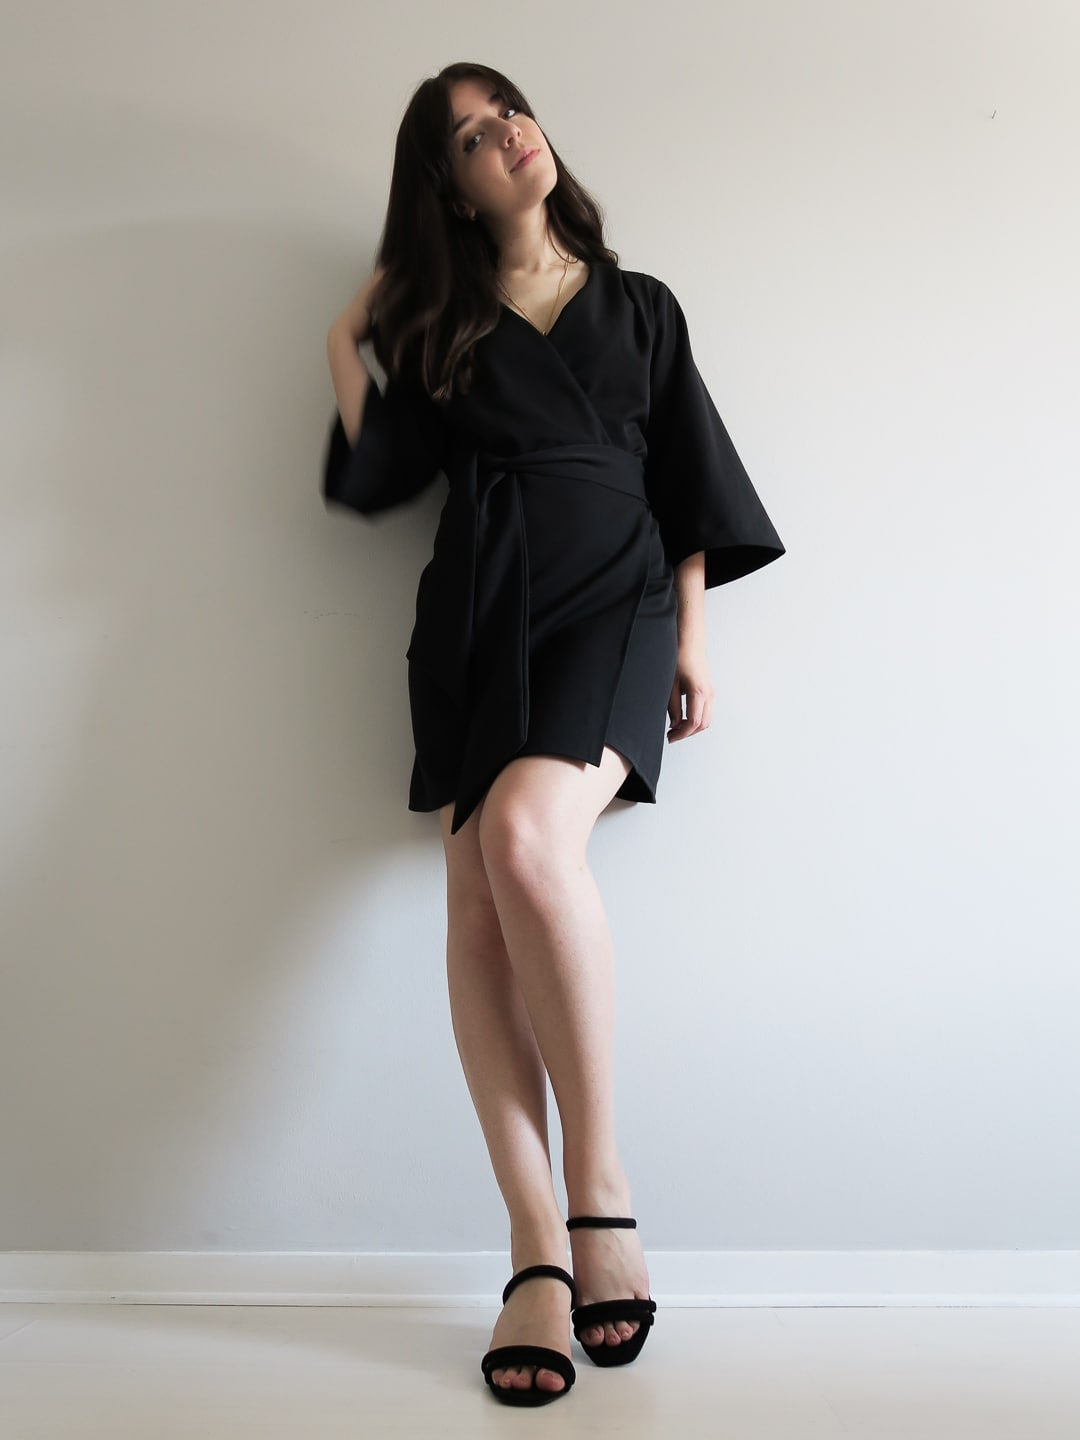 Minimal LBD Outfit